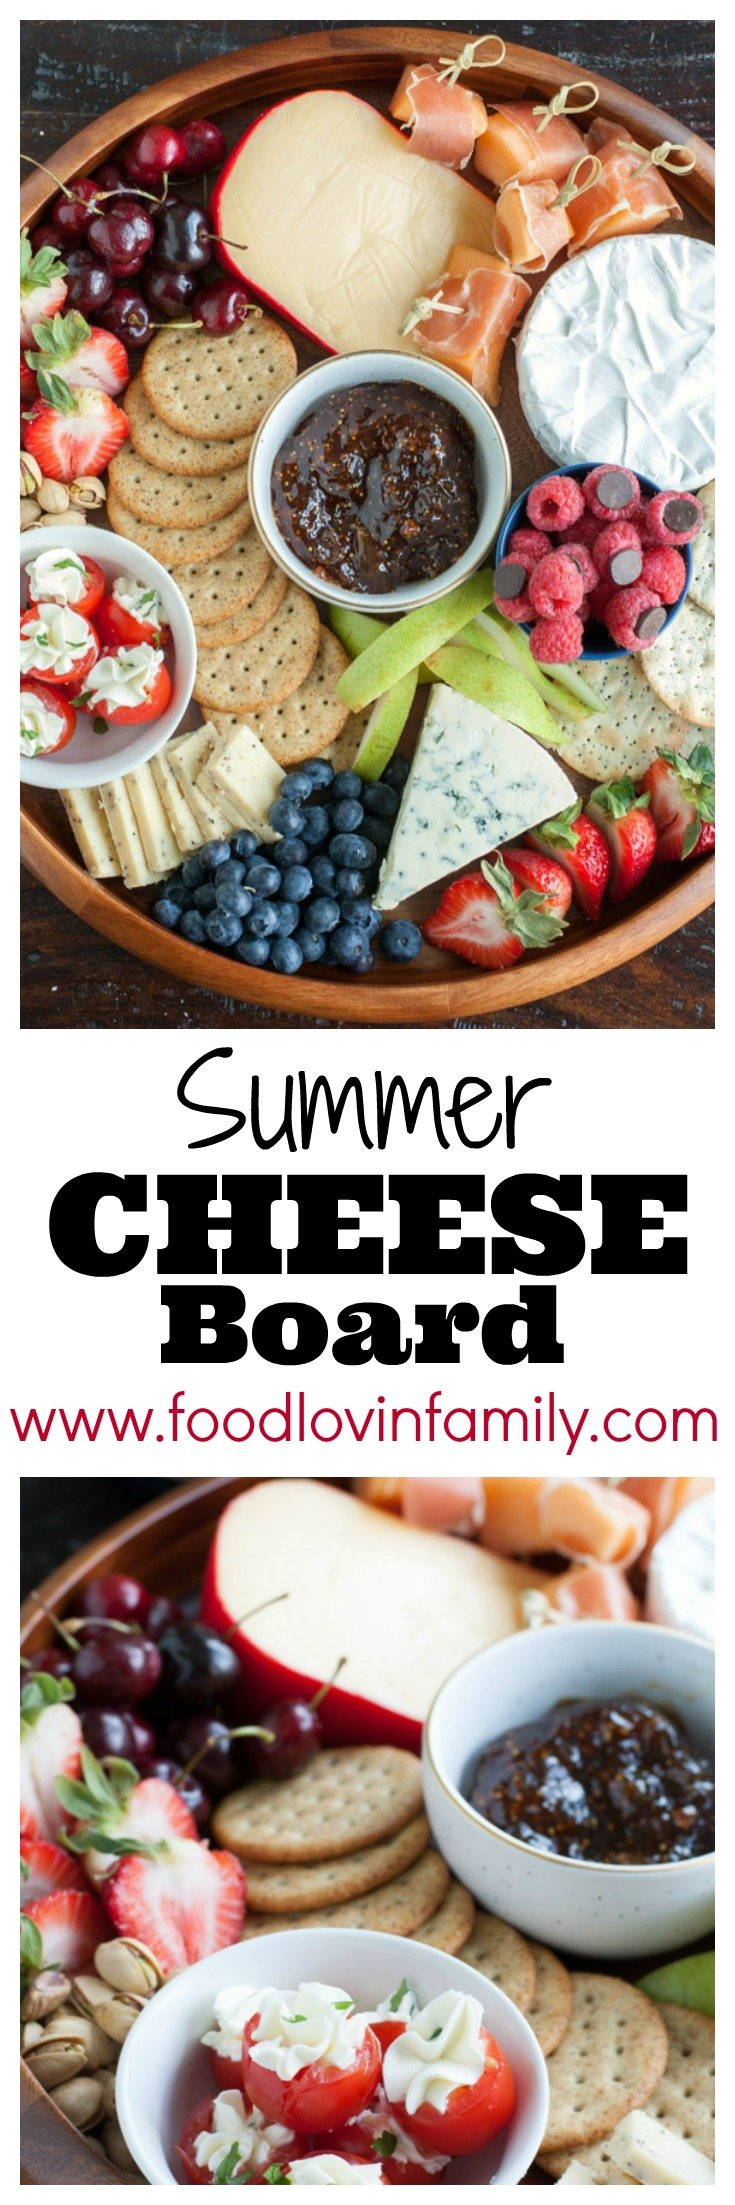 Summer Cheese Board PIN